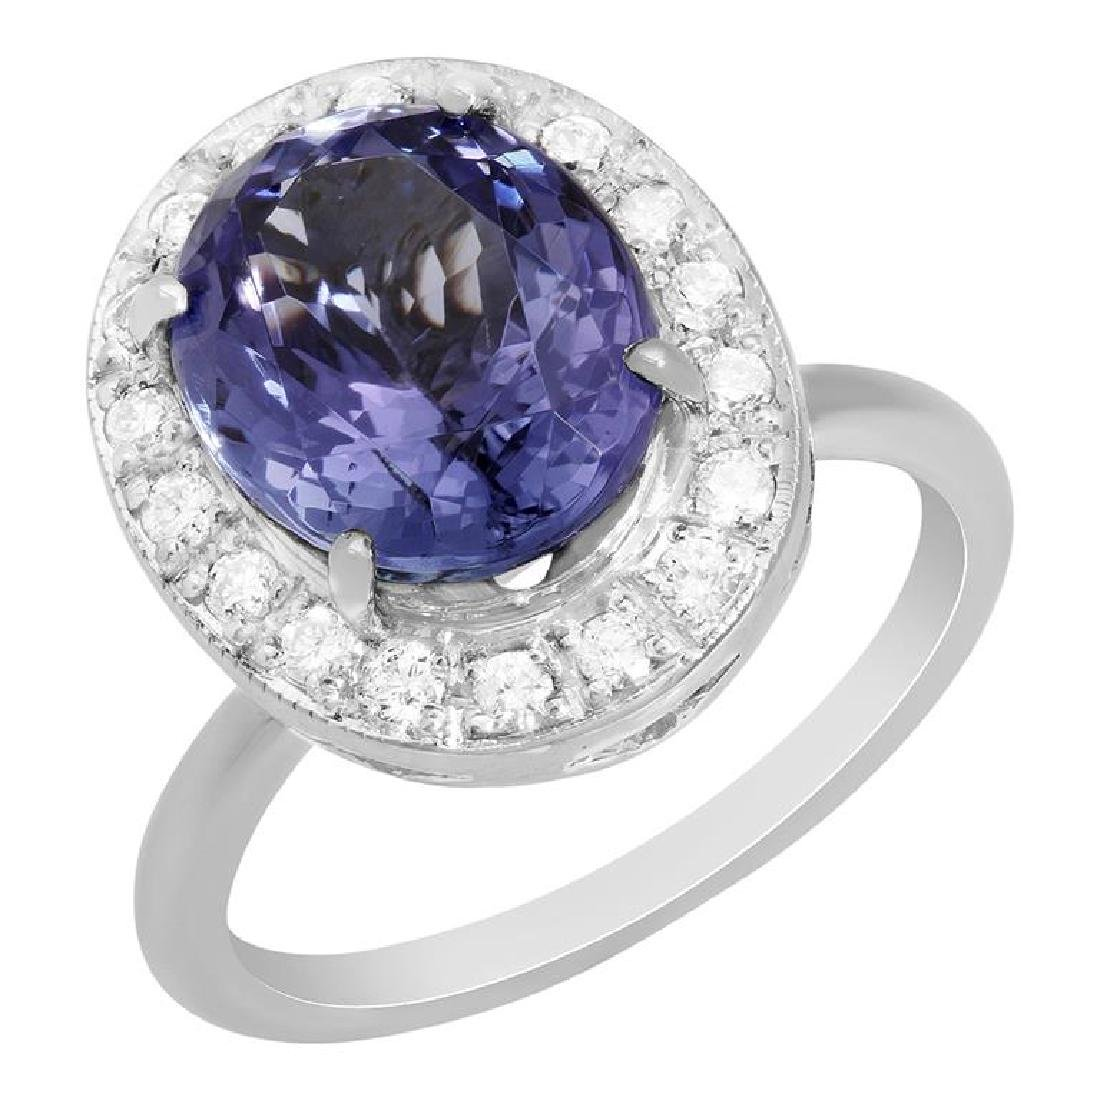 14k White Gold 5.03ct Tanzanite 0.42ct Diamond Ring